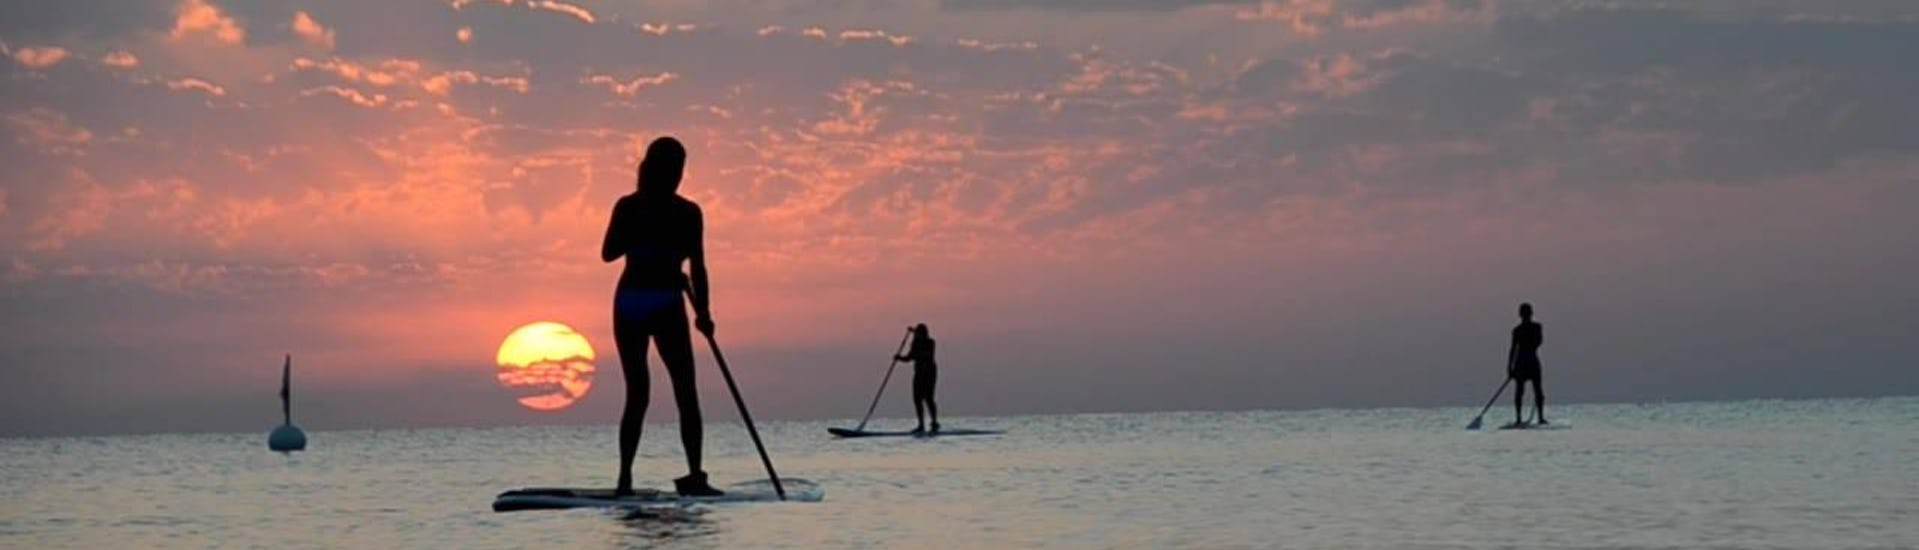 Private SUP Lesson for Kids & Adults - Beginners